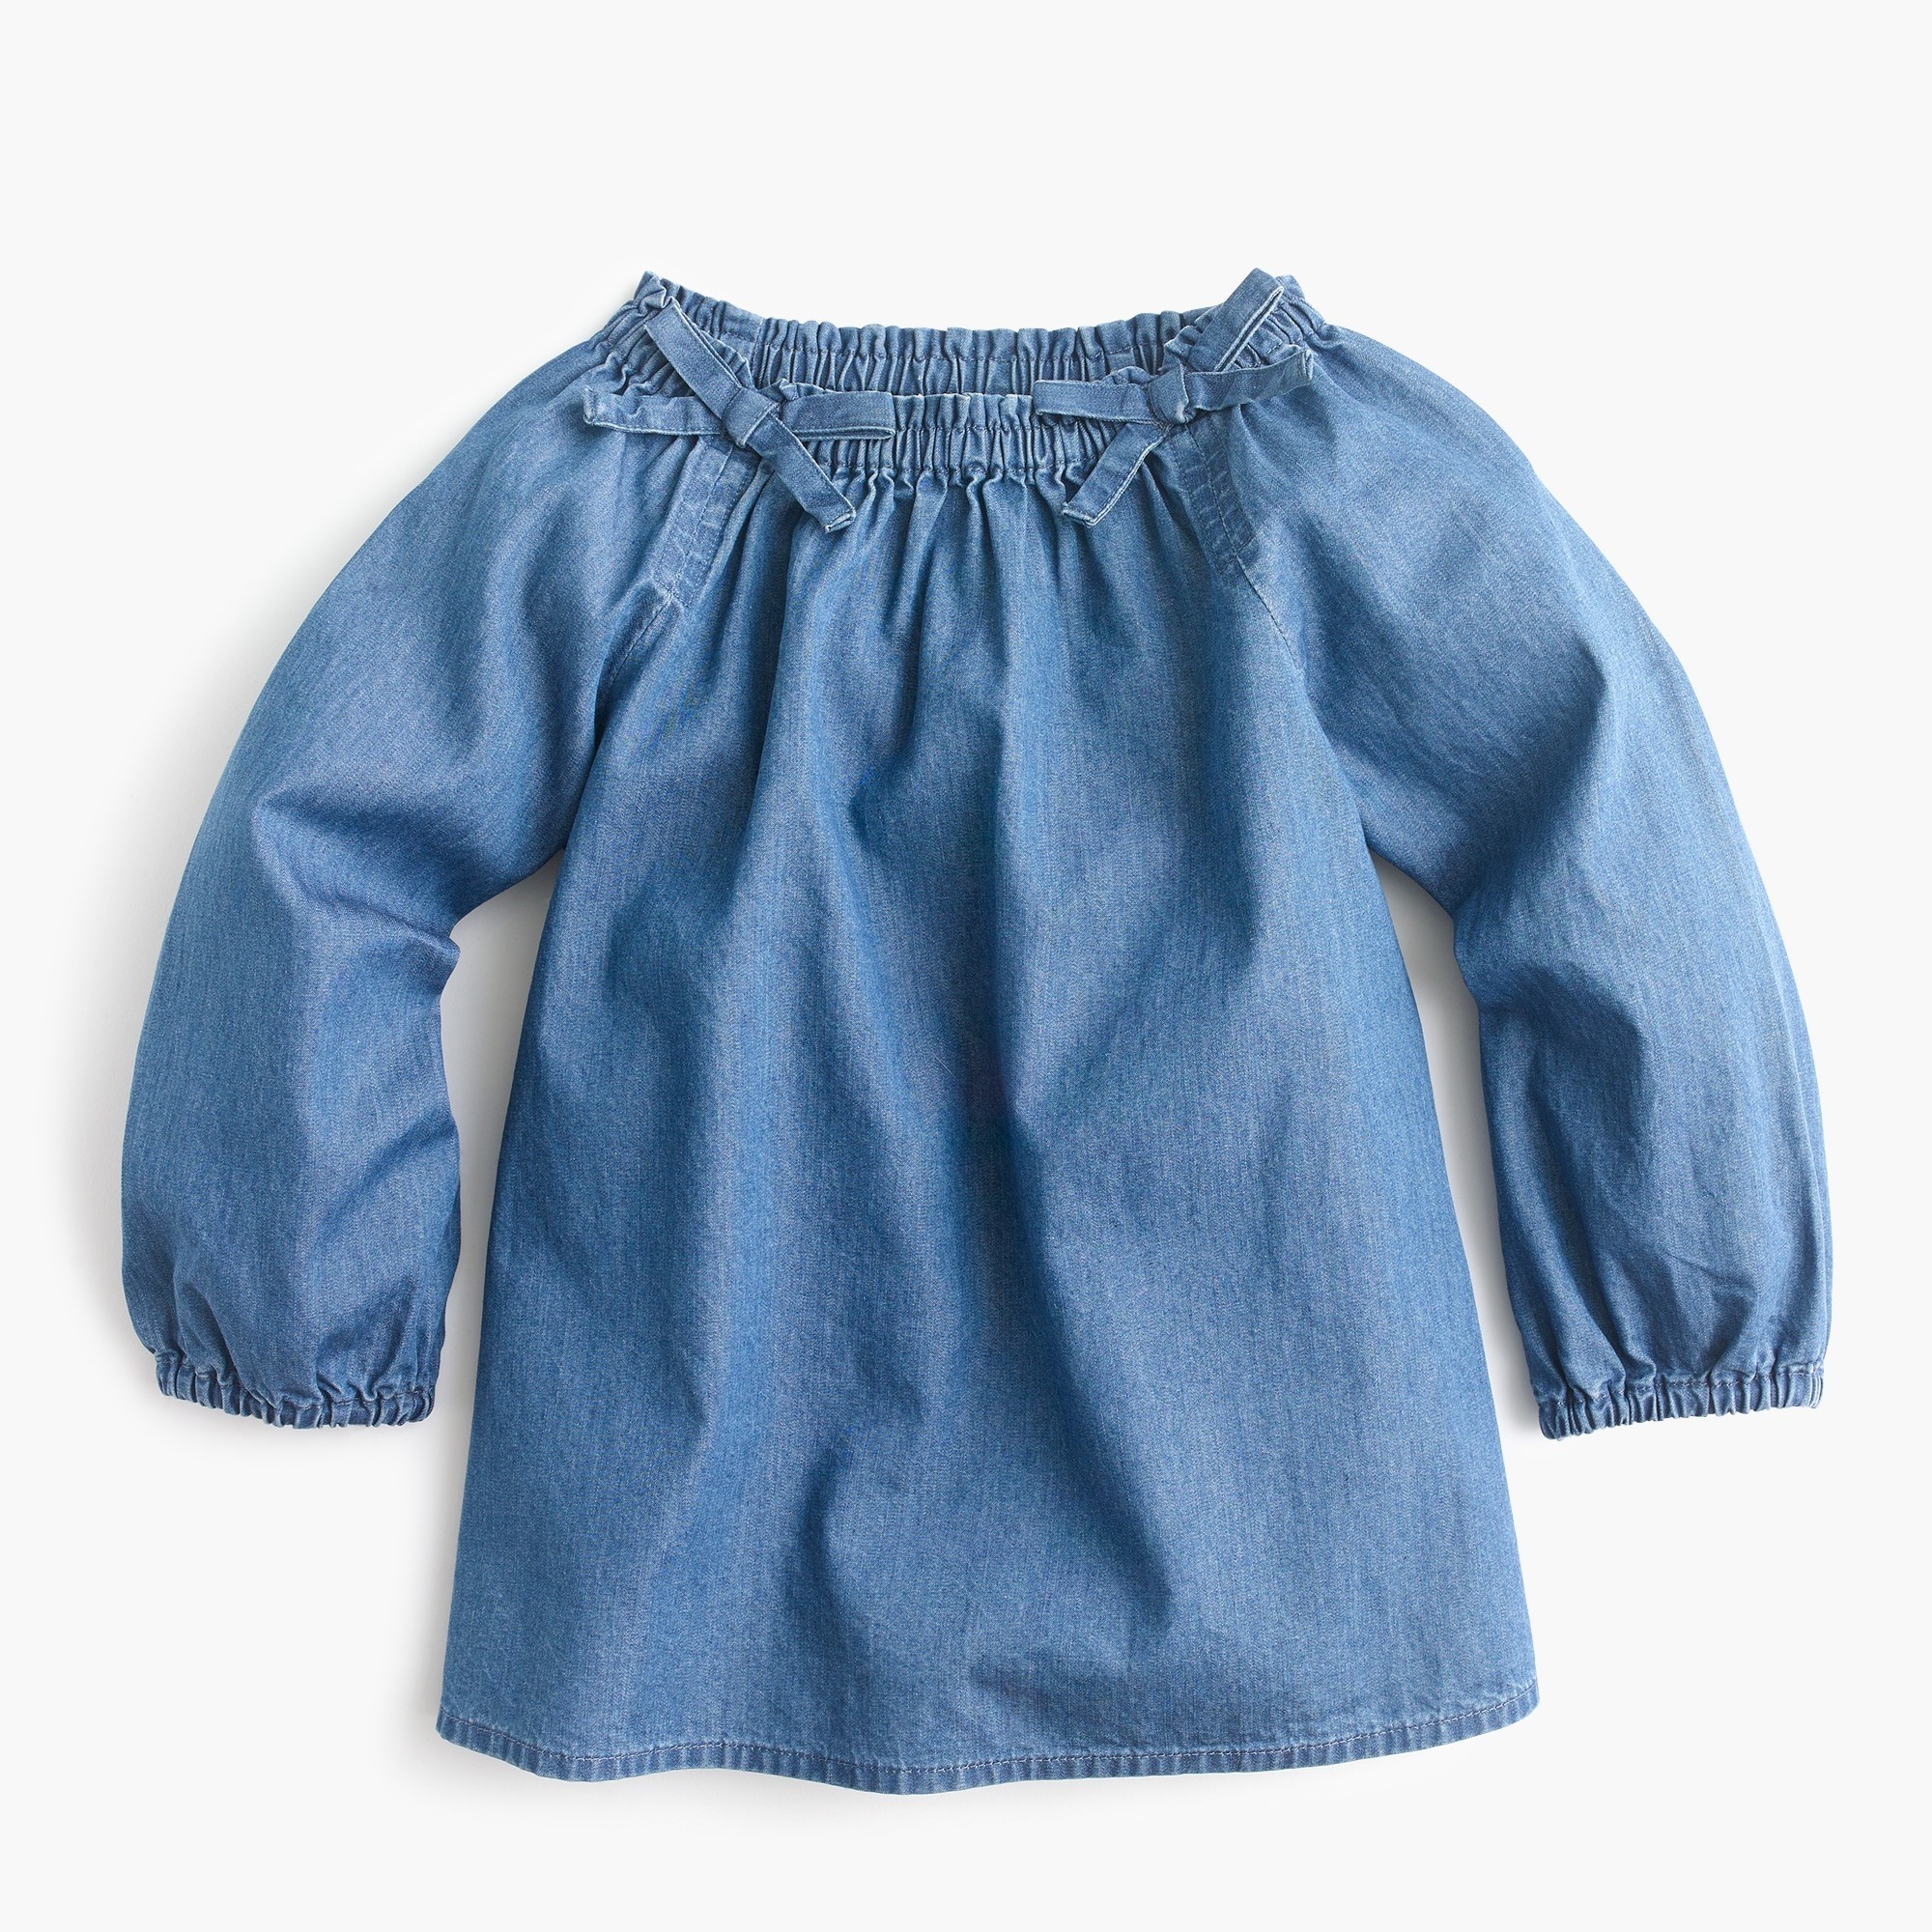 girls' smocked-neck top in chambray : girl shirts